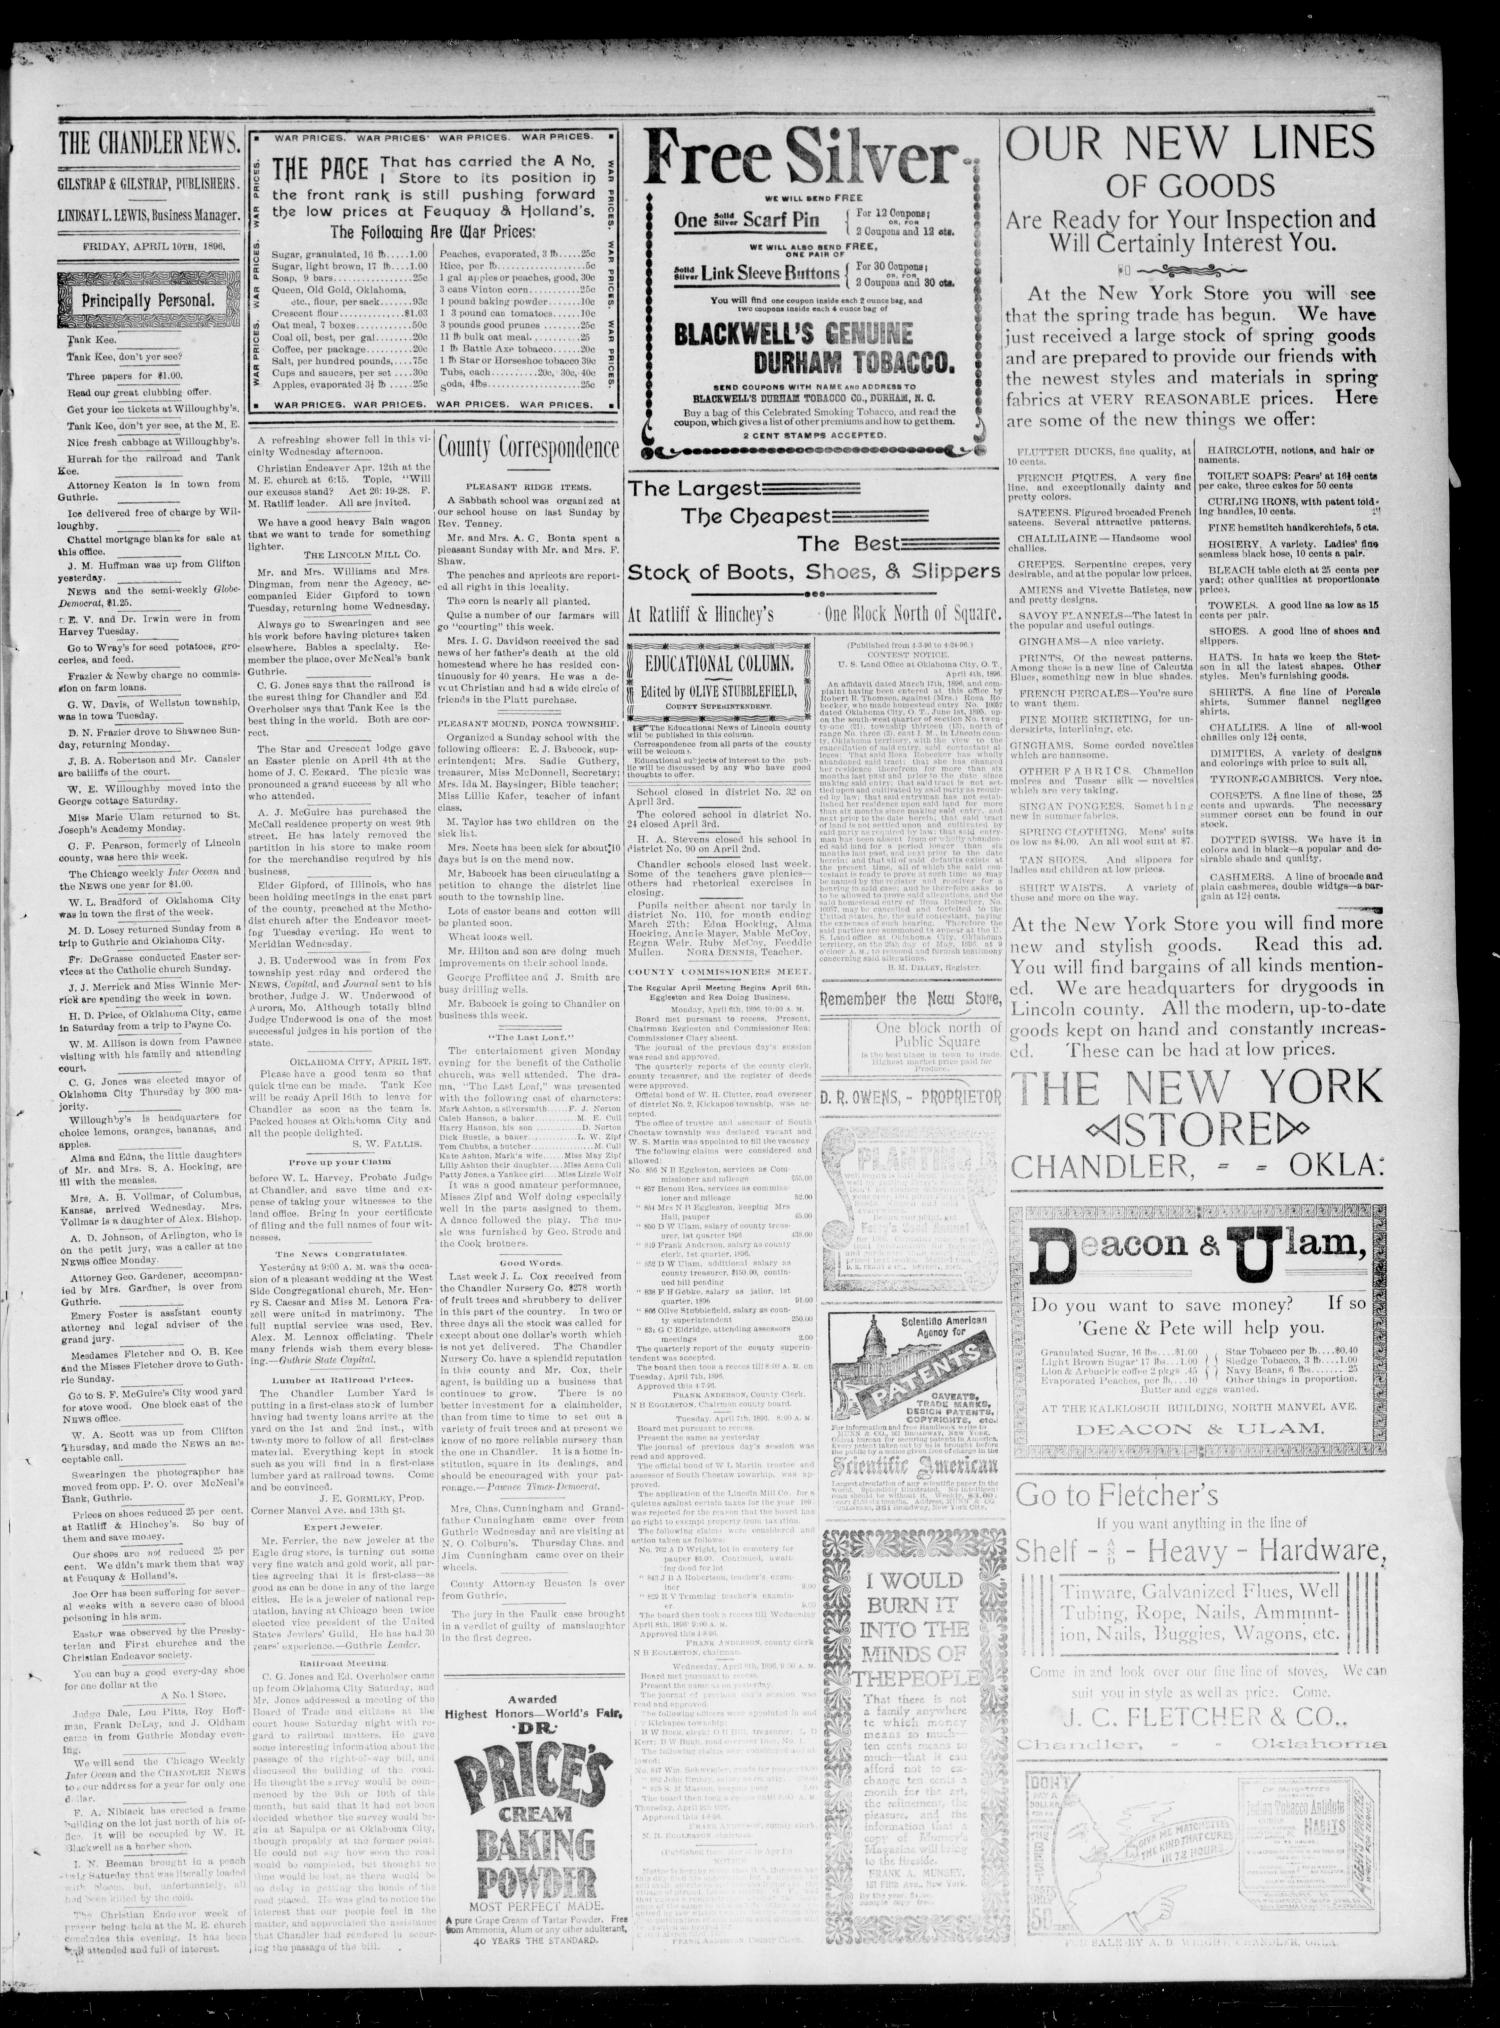 The Chandler News. (Chandler, Okla.), Vol. 5, No. 29, Ed. 1 Friday, April 10, 1896                                                                                                      [Sequence #]: 3 of 4